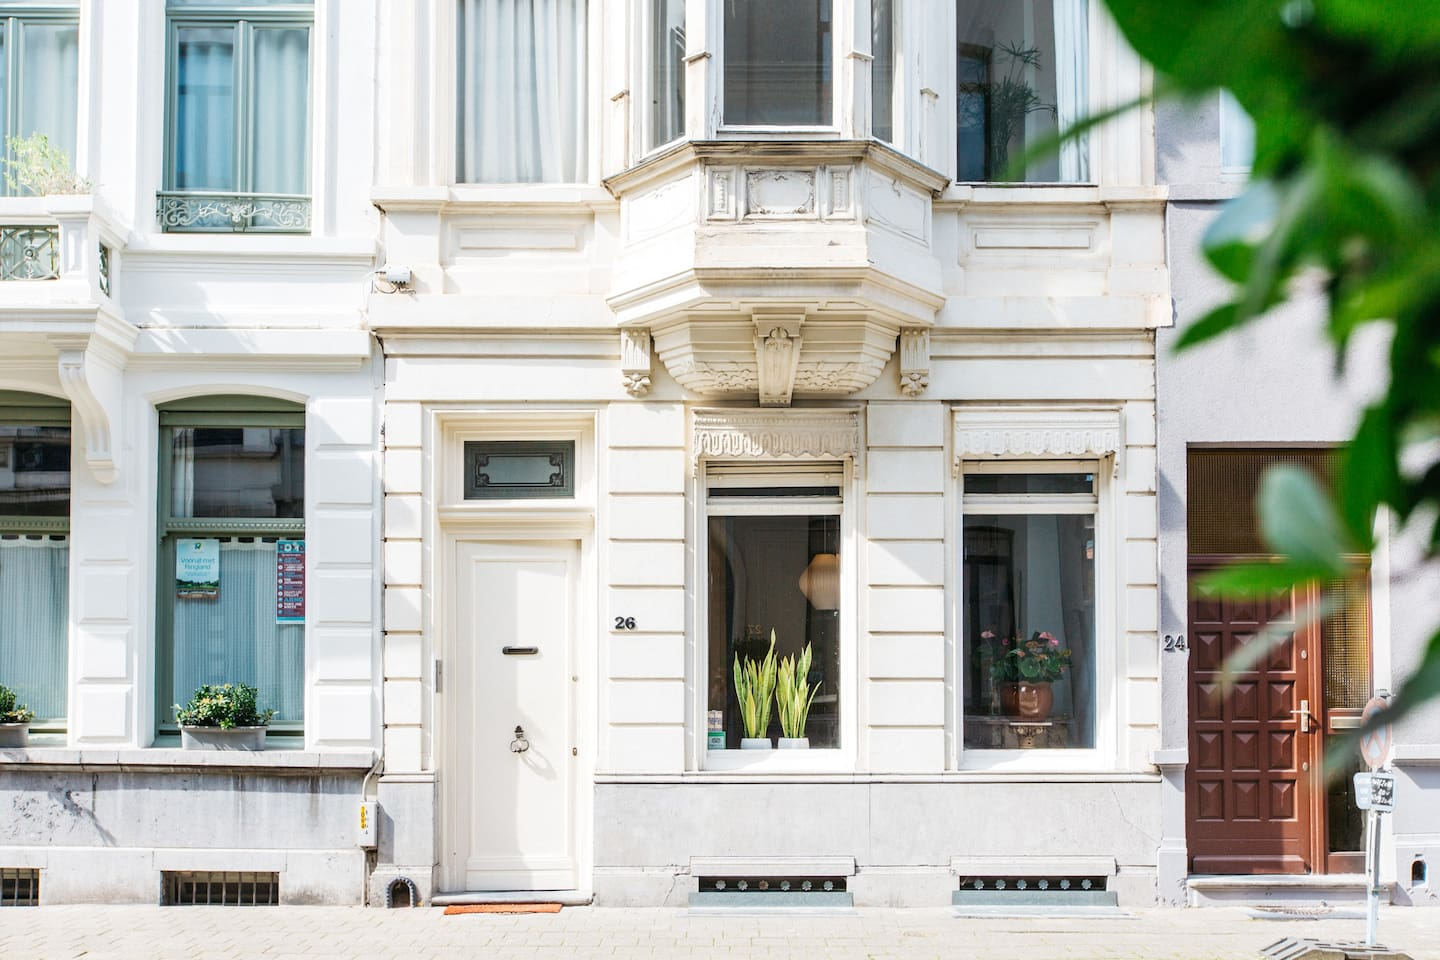 Top 20 Bed en Breakfasts Antwerpen: Herbergen en B&Bs - Airbnb ...